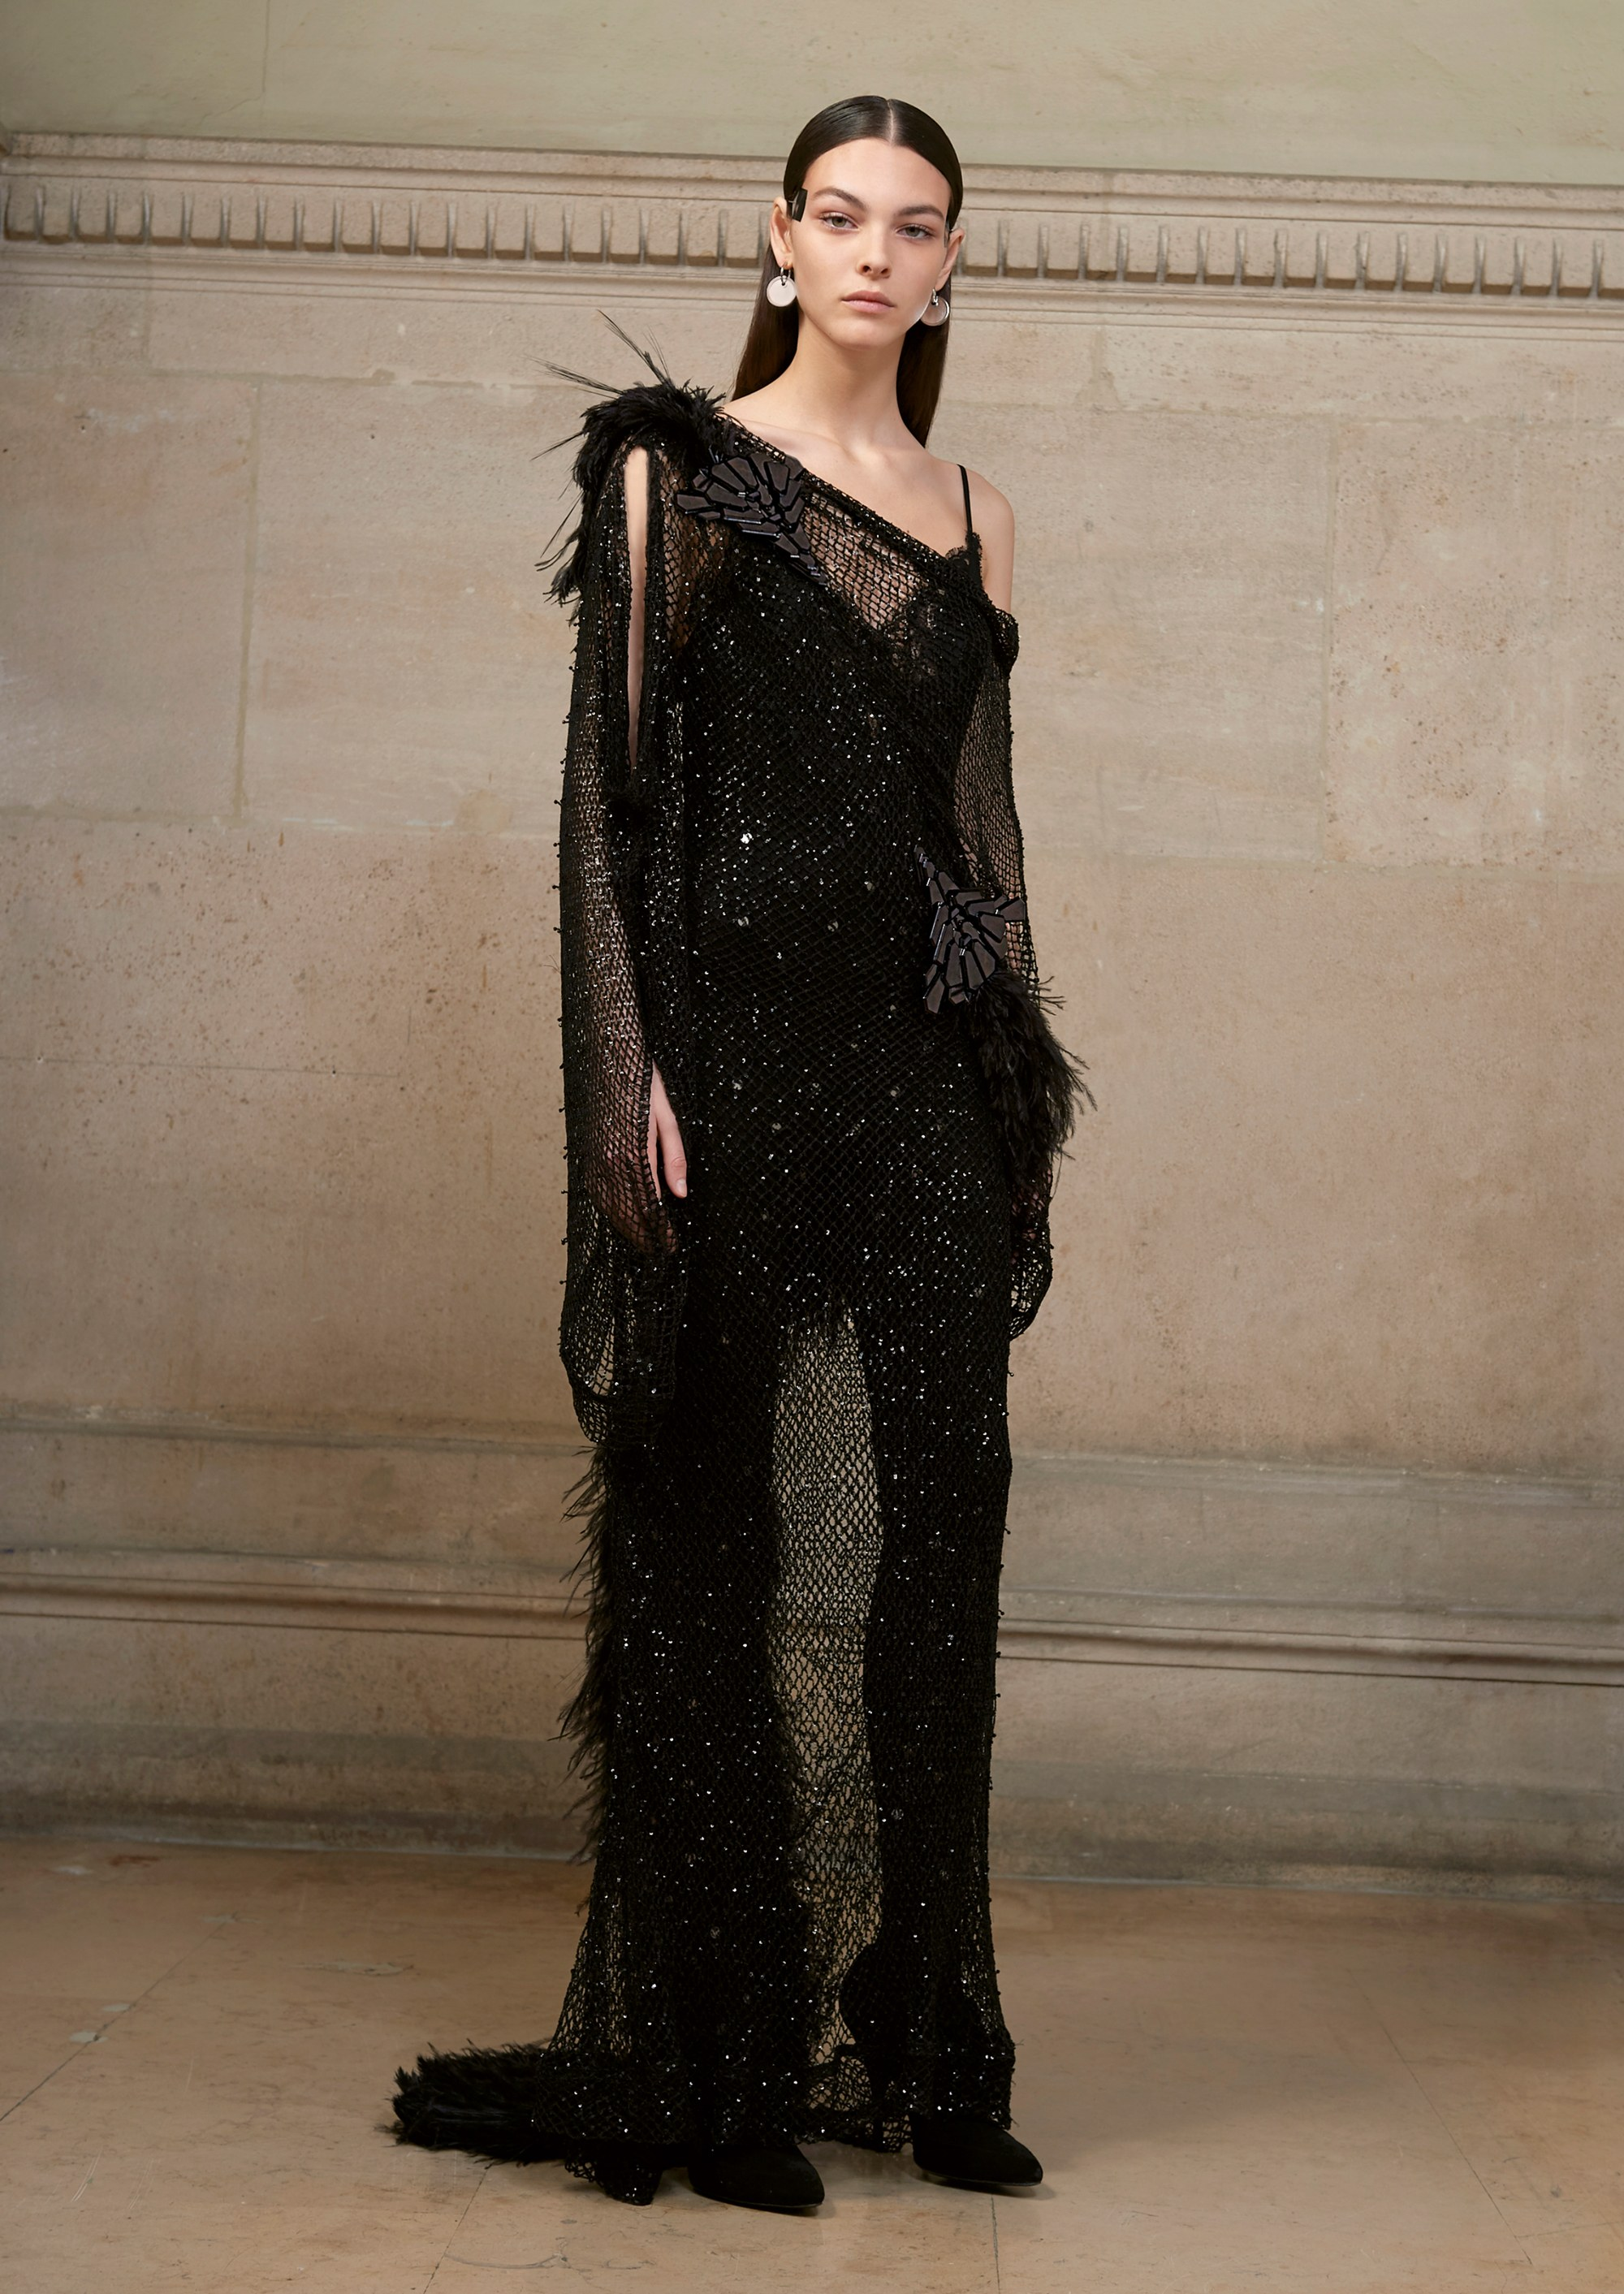 12-givenchy-couture-spring-2017